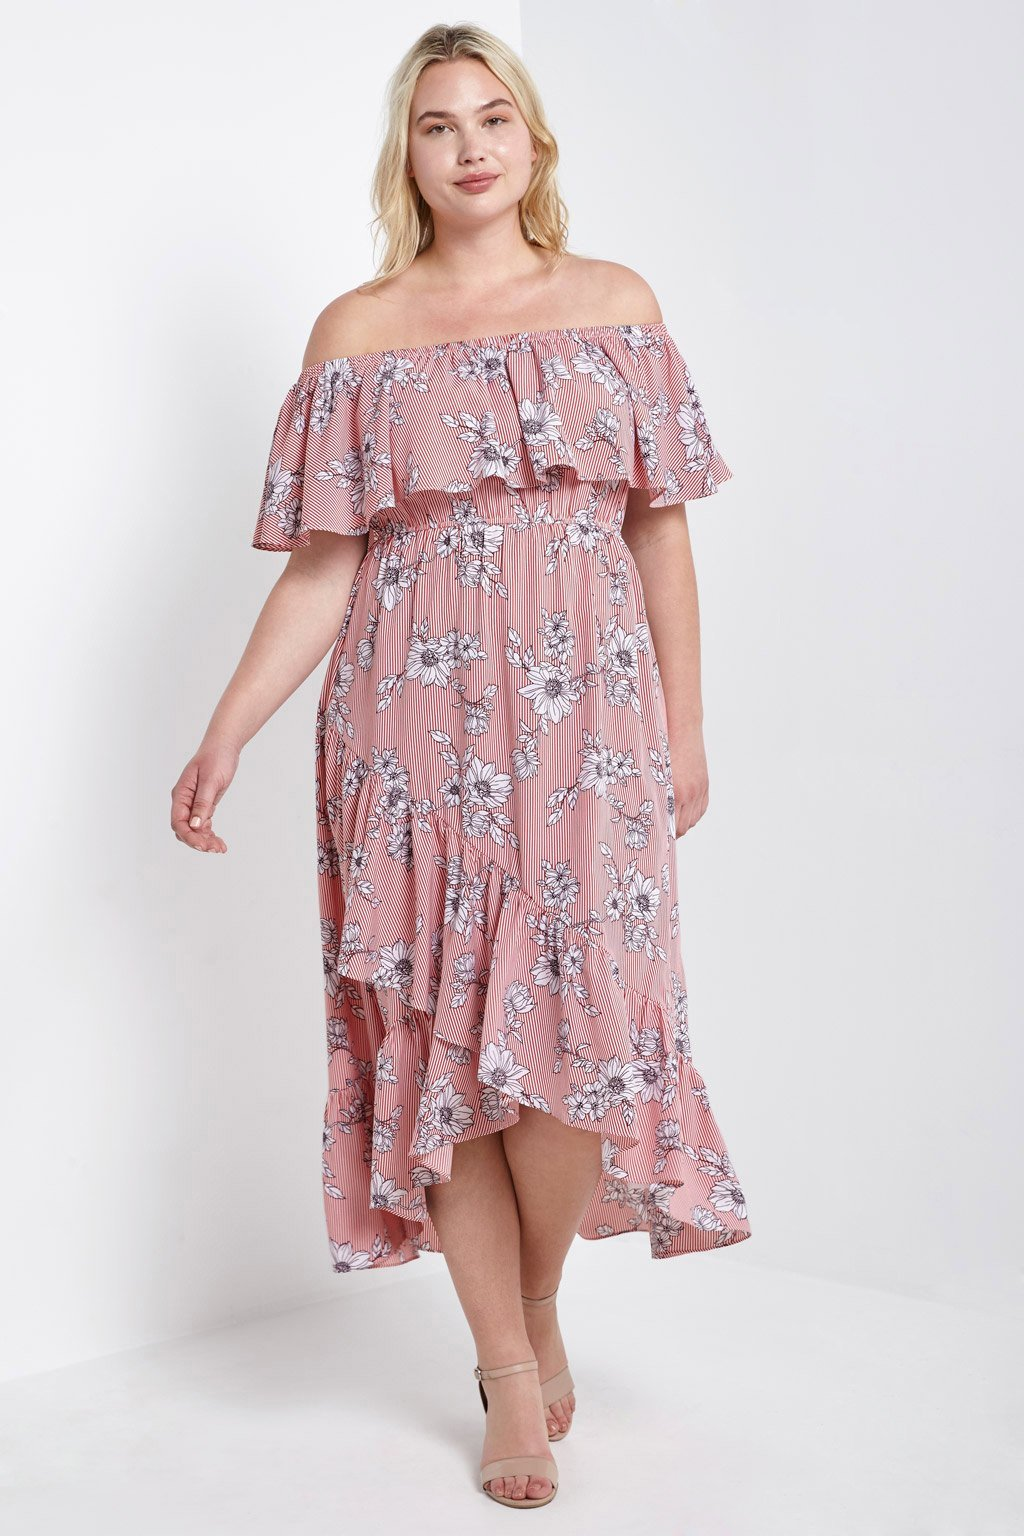 Poshsquare Plus Floral Off the Shoulder Flounce Dress Plus Size